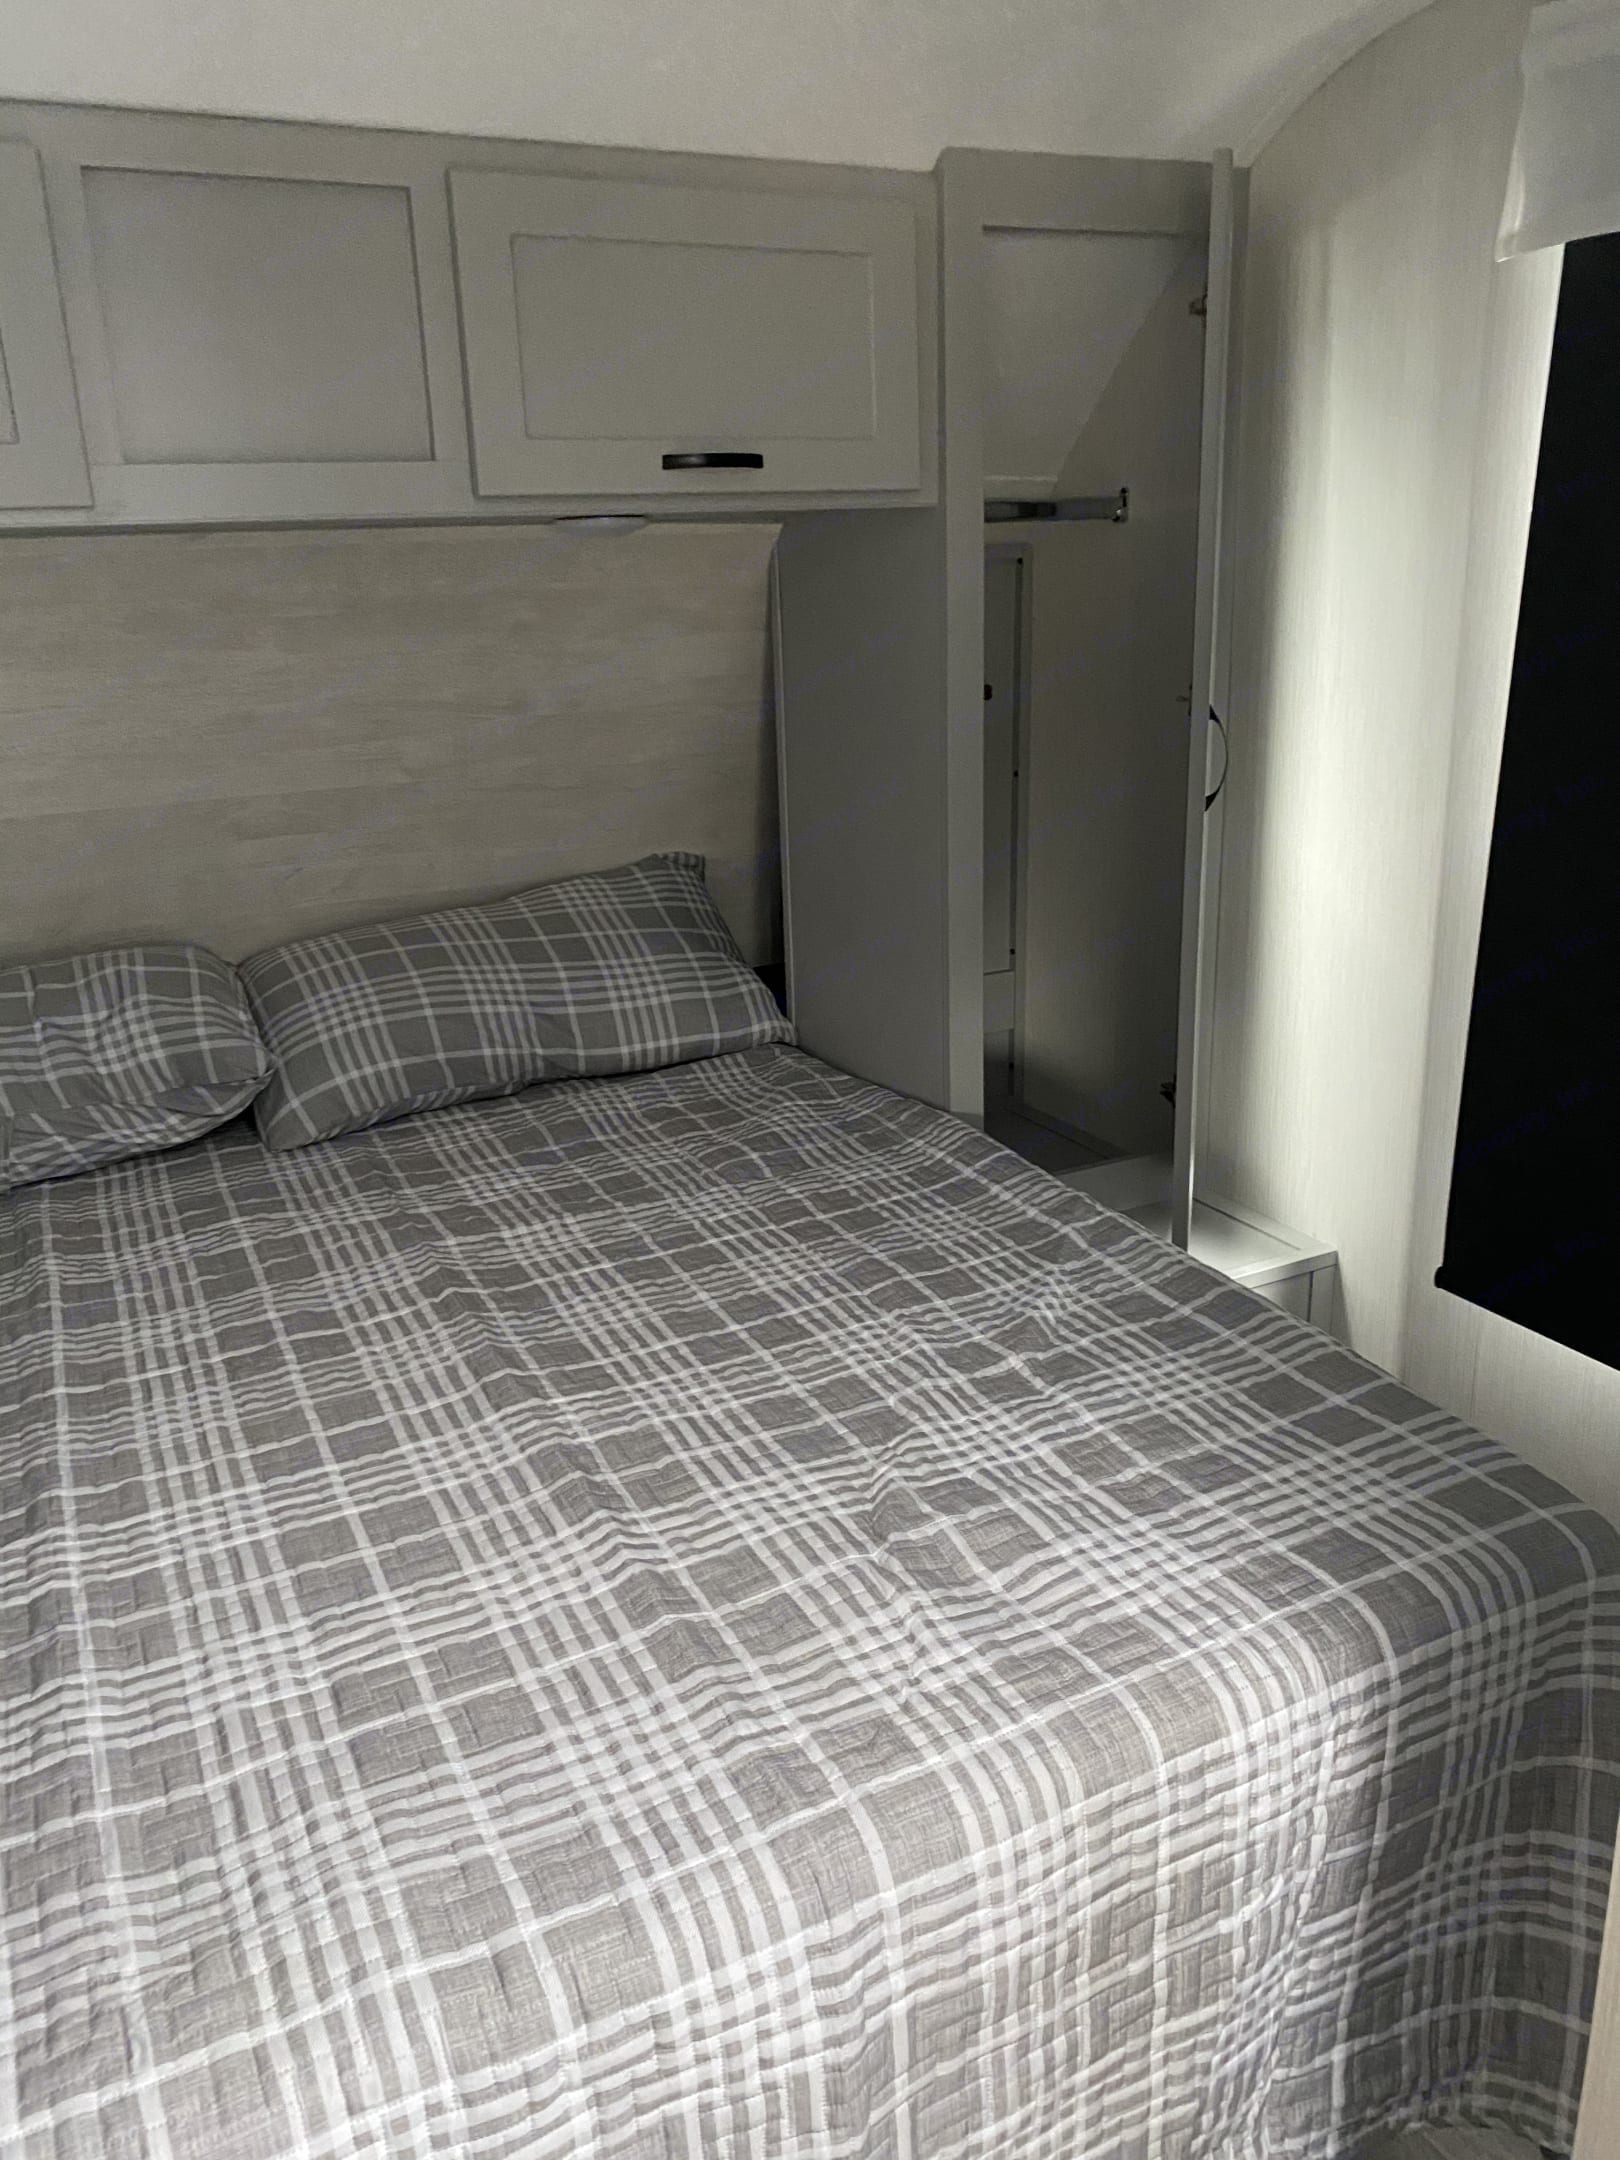 Plenty of room with this full sized bed!. Forest River Vibe 2021